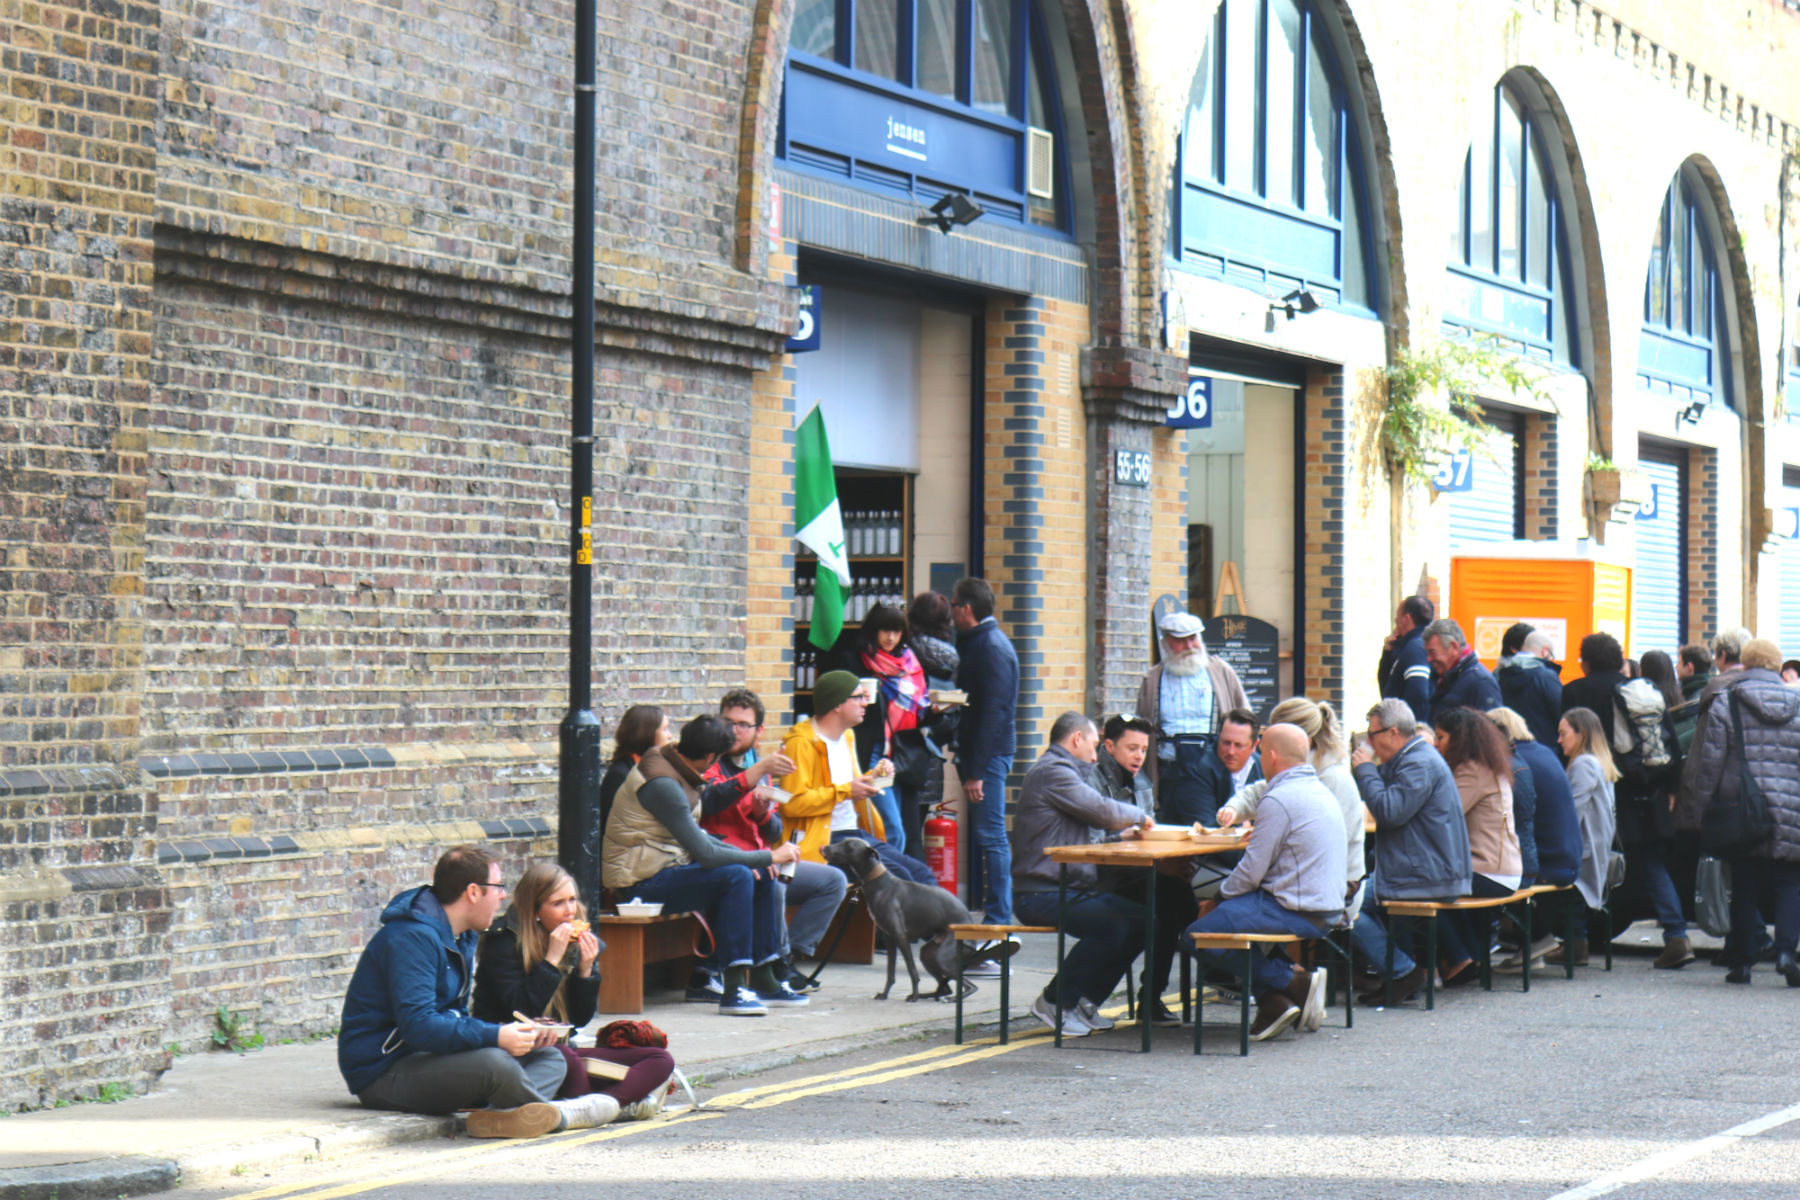 people-eating-maltby-street-market-2